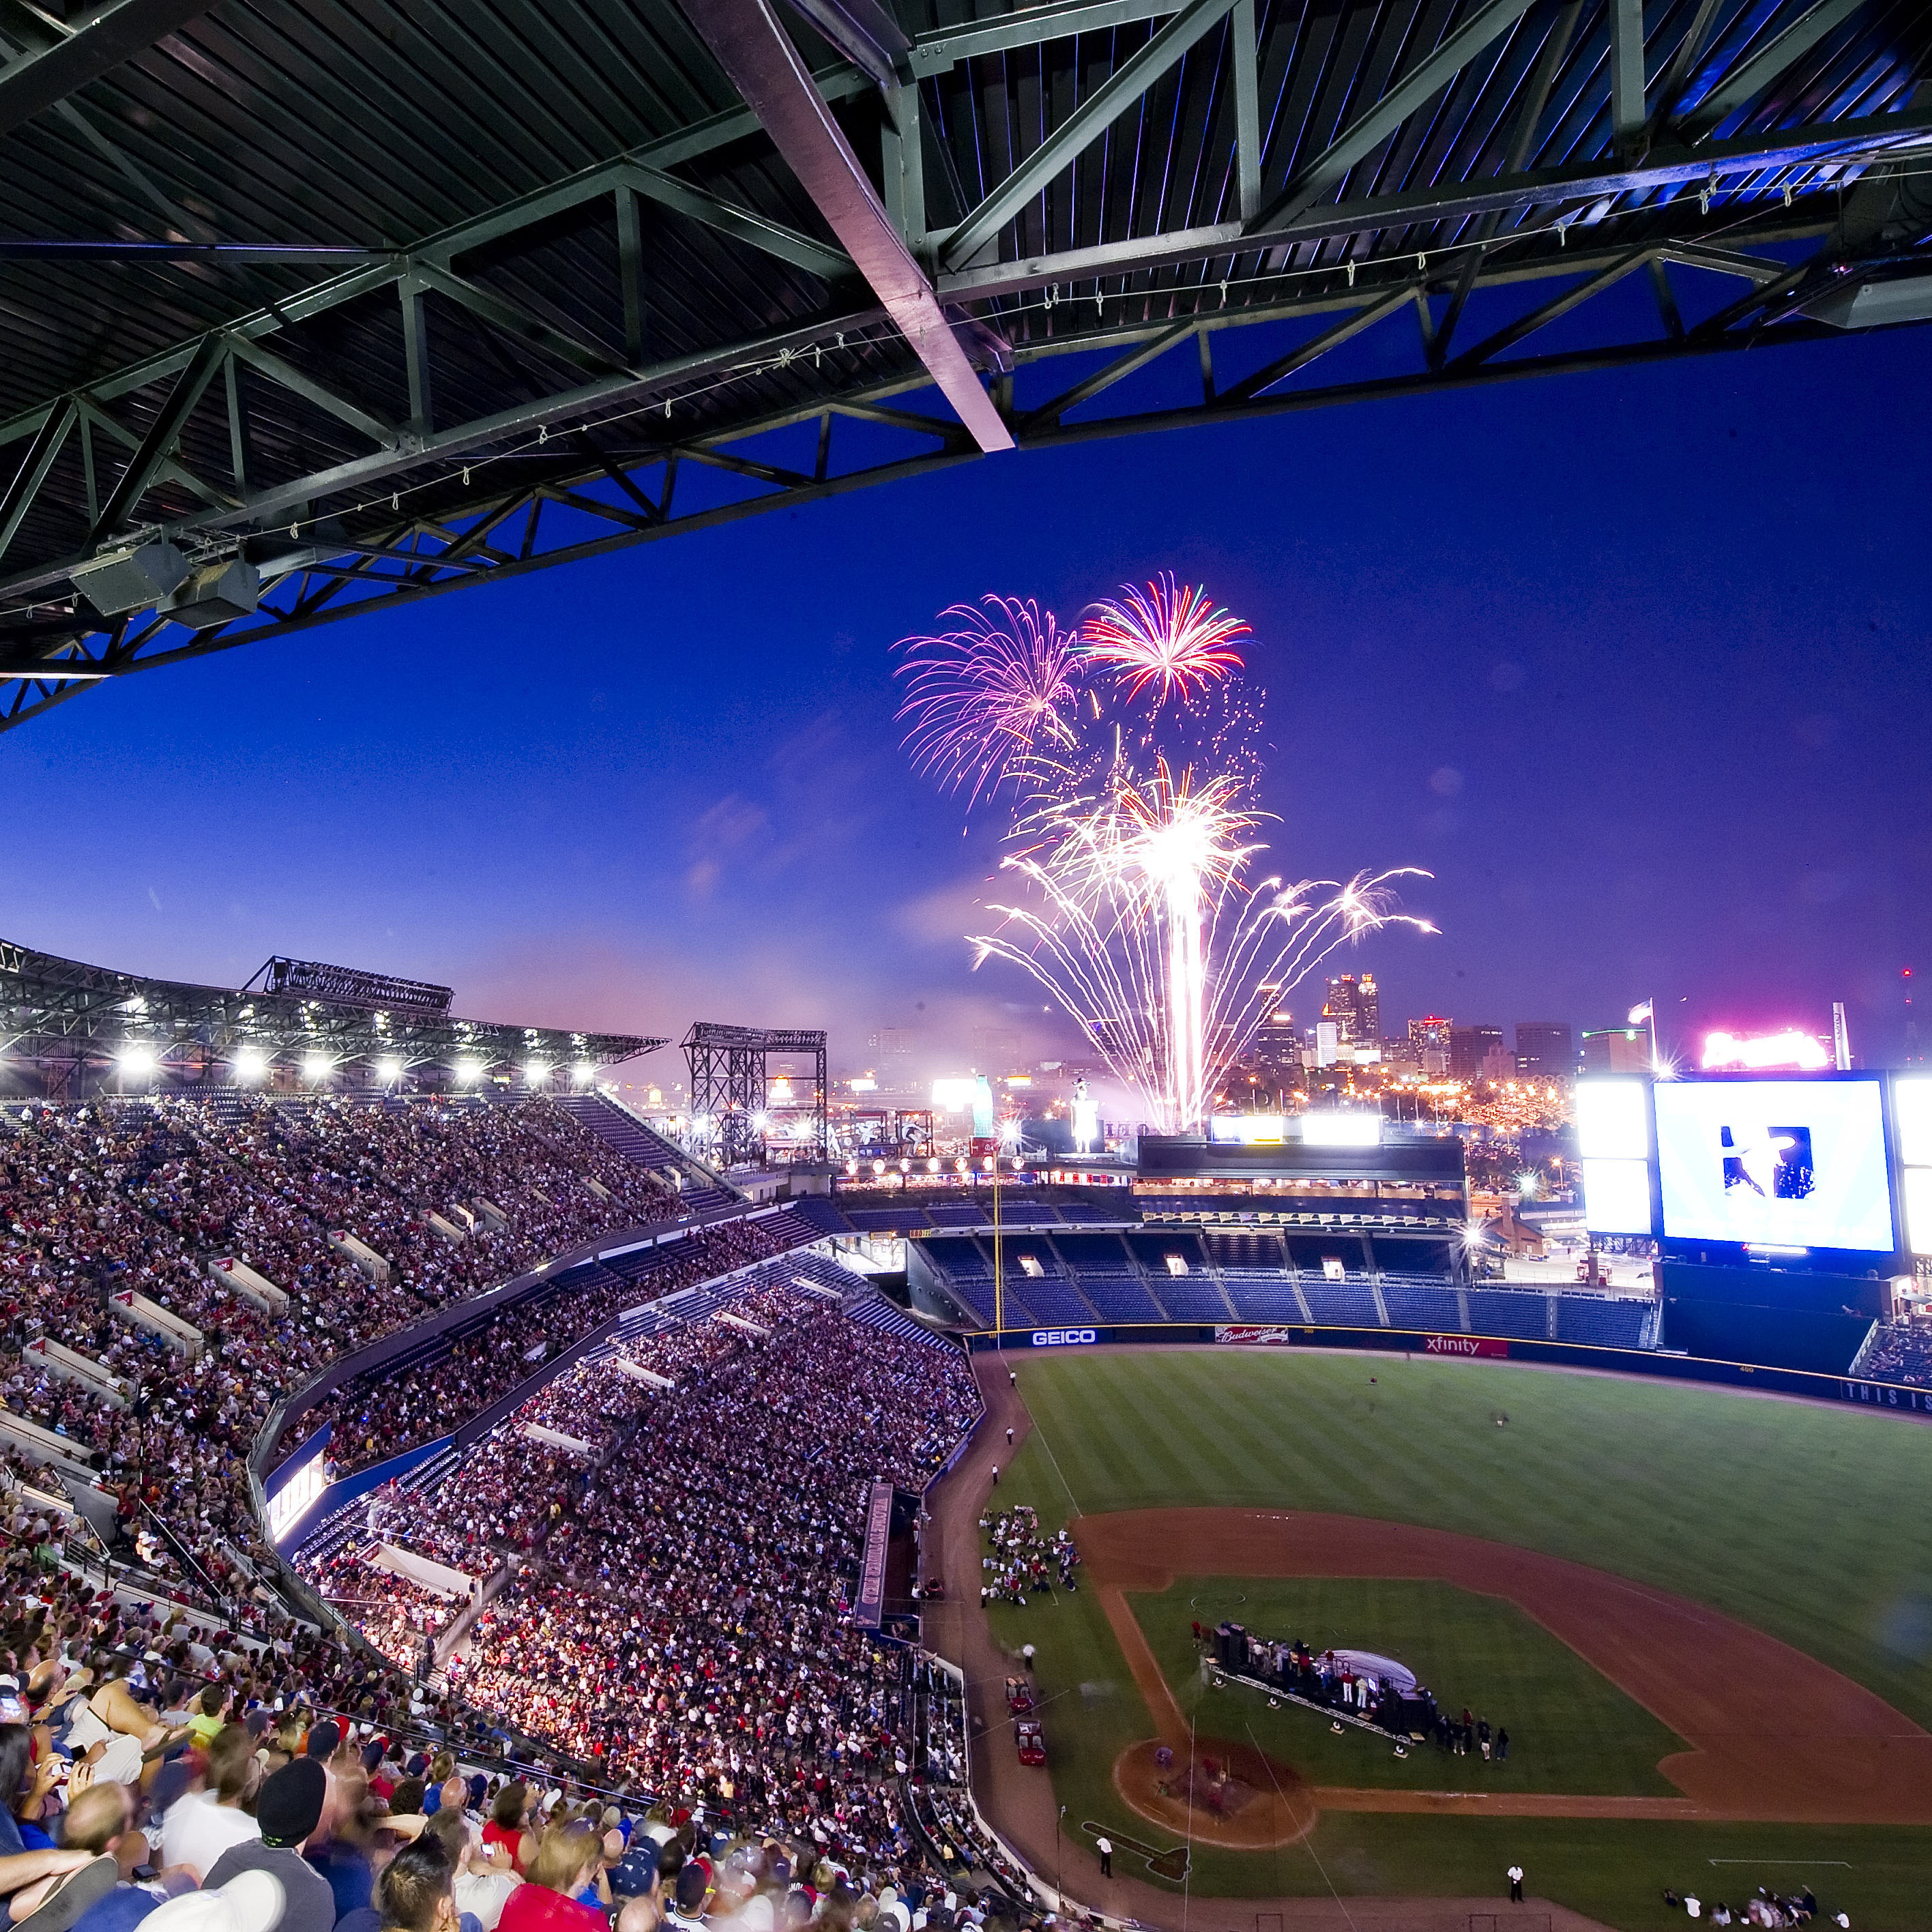 Places To Visit In Florida In April: 3. Stay For The Fireworks At The Ted